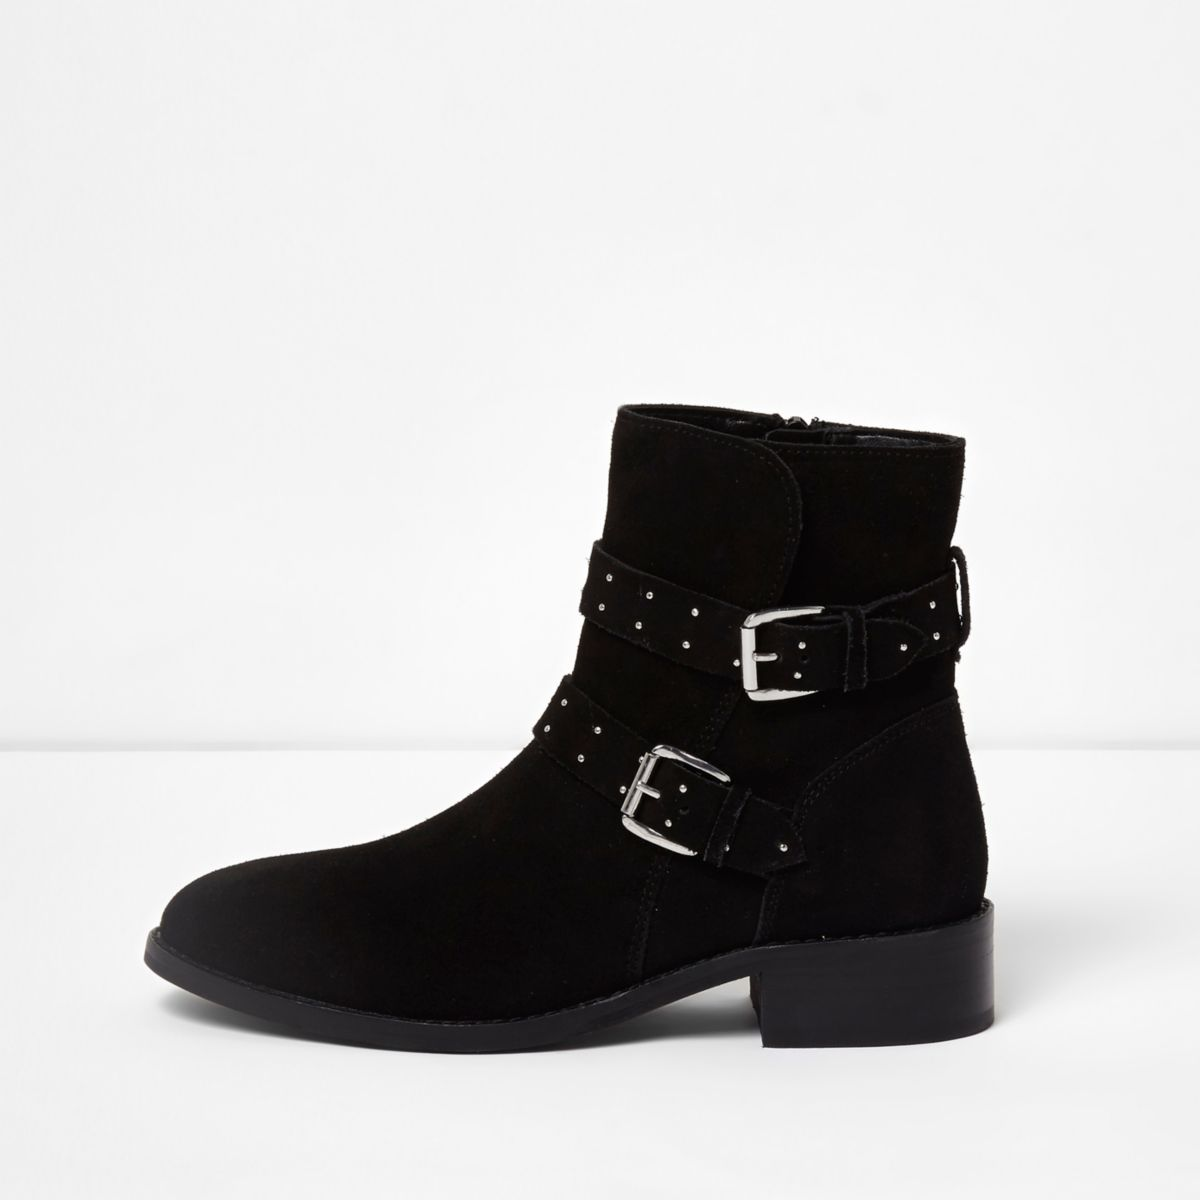 Product - Womens Via Spiga Mirren Wedge Lace-Up Ankle Boots, Black Suede, 5 US / 35 EU. Product Image. Price $ Product Title. Womens Black Suede Ankle Boots Studded Fringe Booties Cut Outs 6 Inch Heels. Product - Very Volatile Whitby Women Round Toe Suede Black Ankle Boot. Product Image. Price $